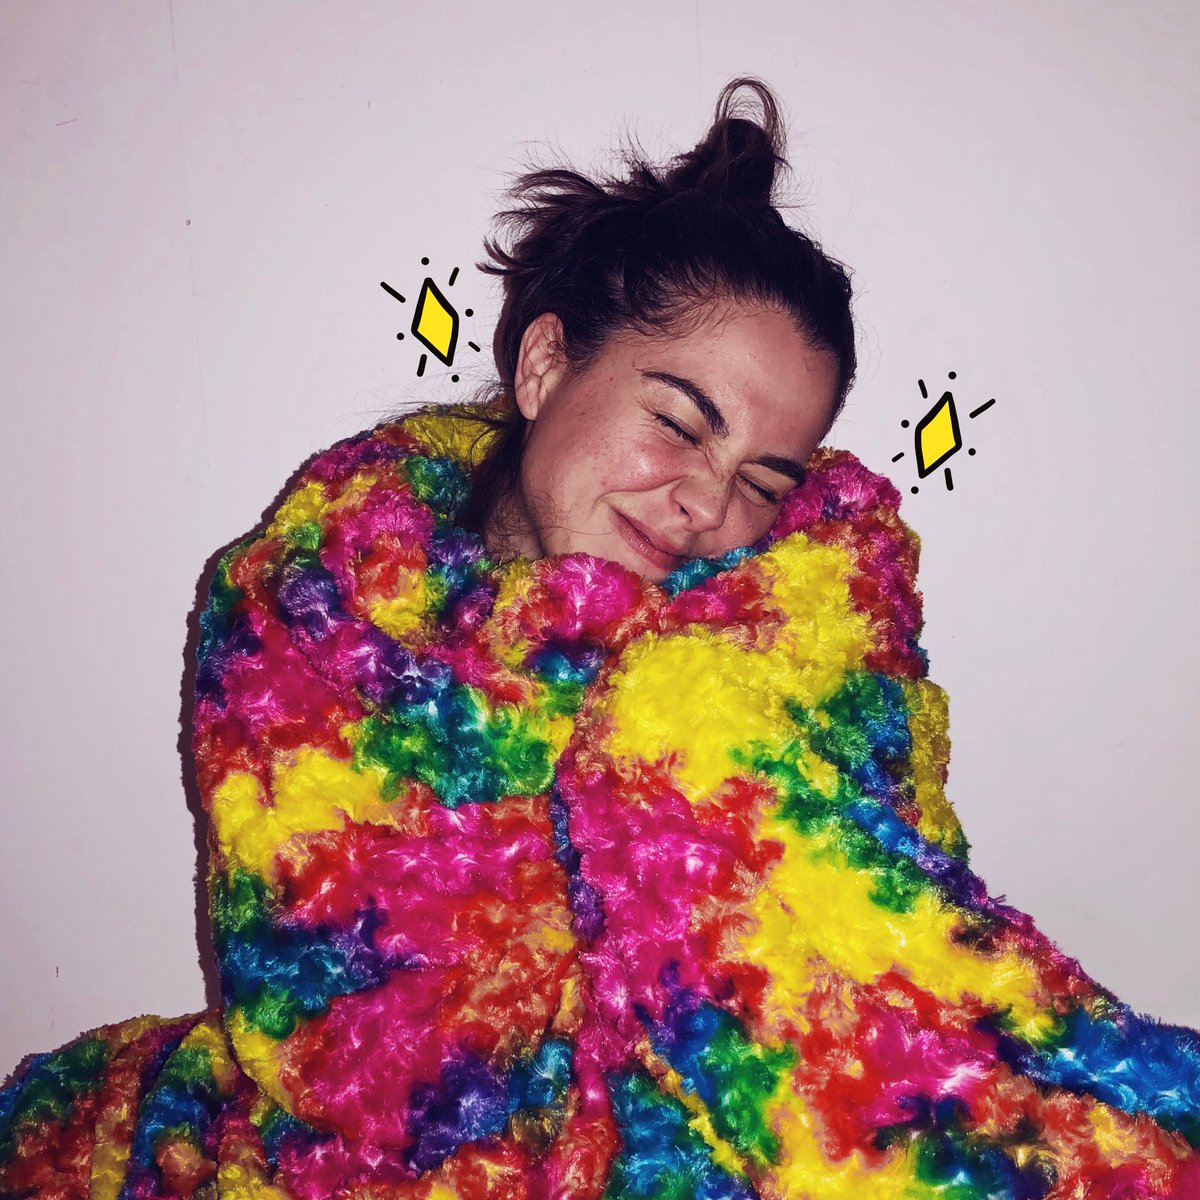 I AM HERE FOR THE SNUGGLES... 🥰 ✨BIG GIANT THANK YOU TO @BlanketMagic FOR SENDING ME THIS ANXIETY REDUCING MAGICAL RAINBOW WEIGHTED BLANKET! I LOOOVE IT. 🌈✨💘